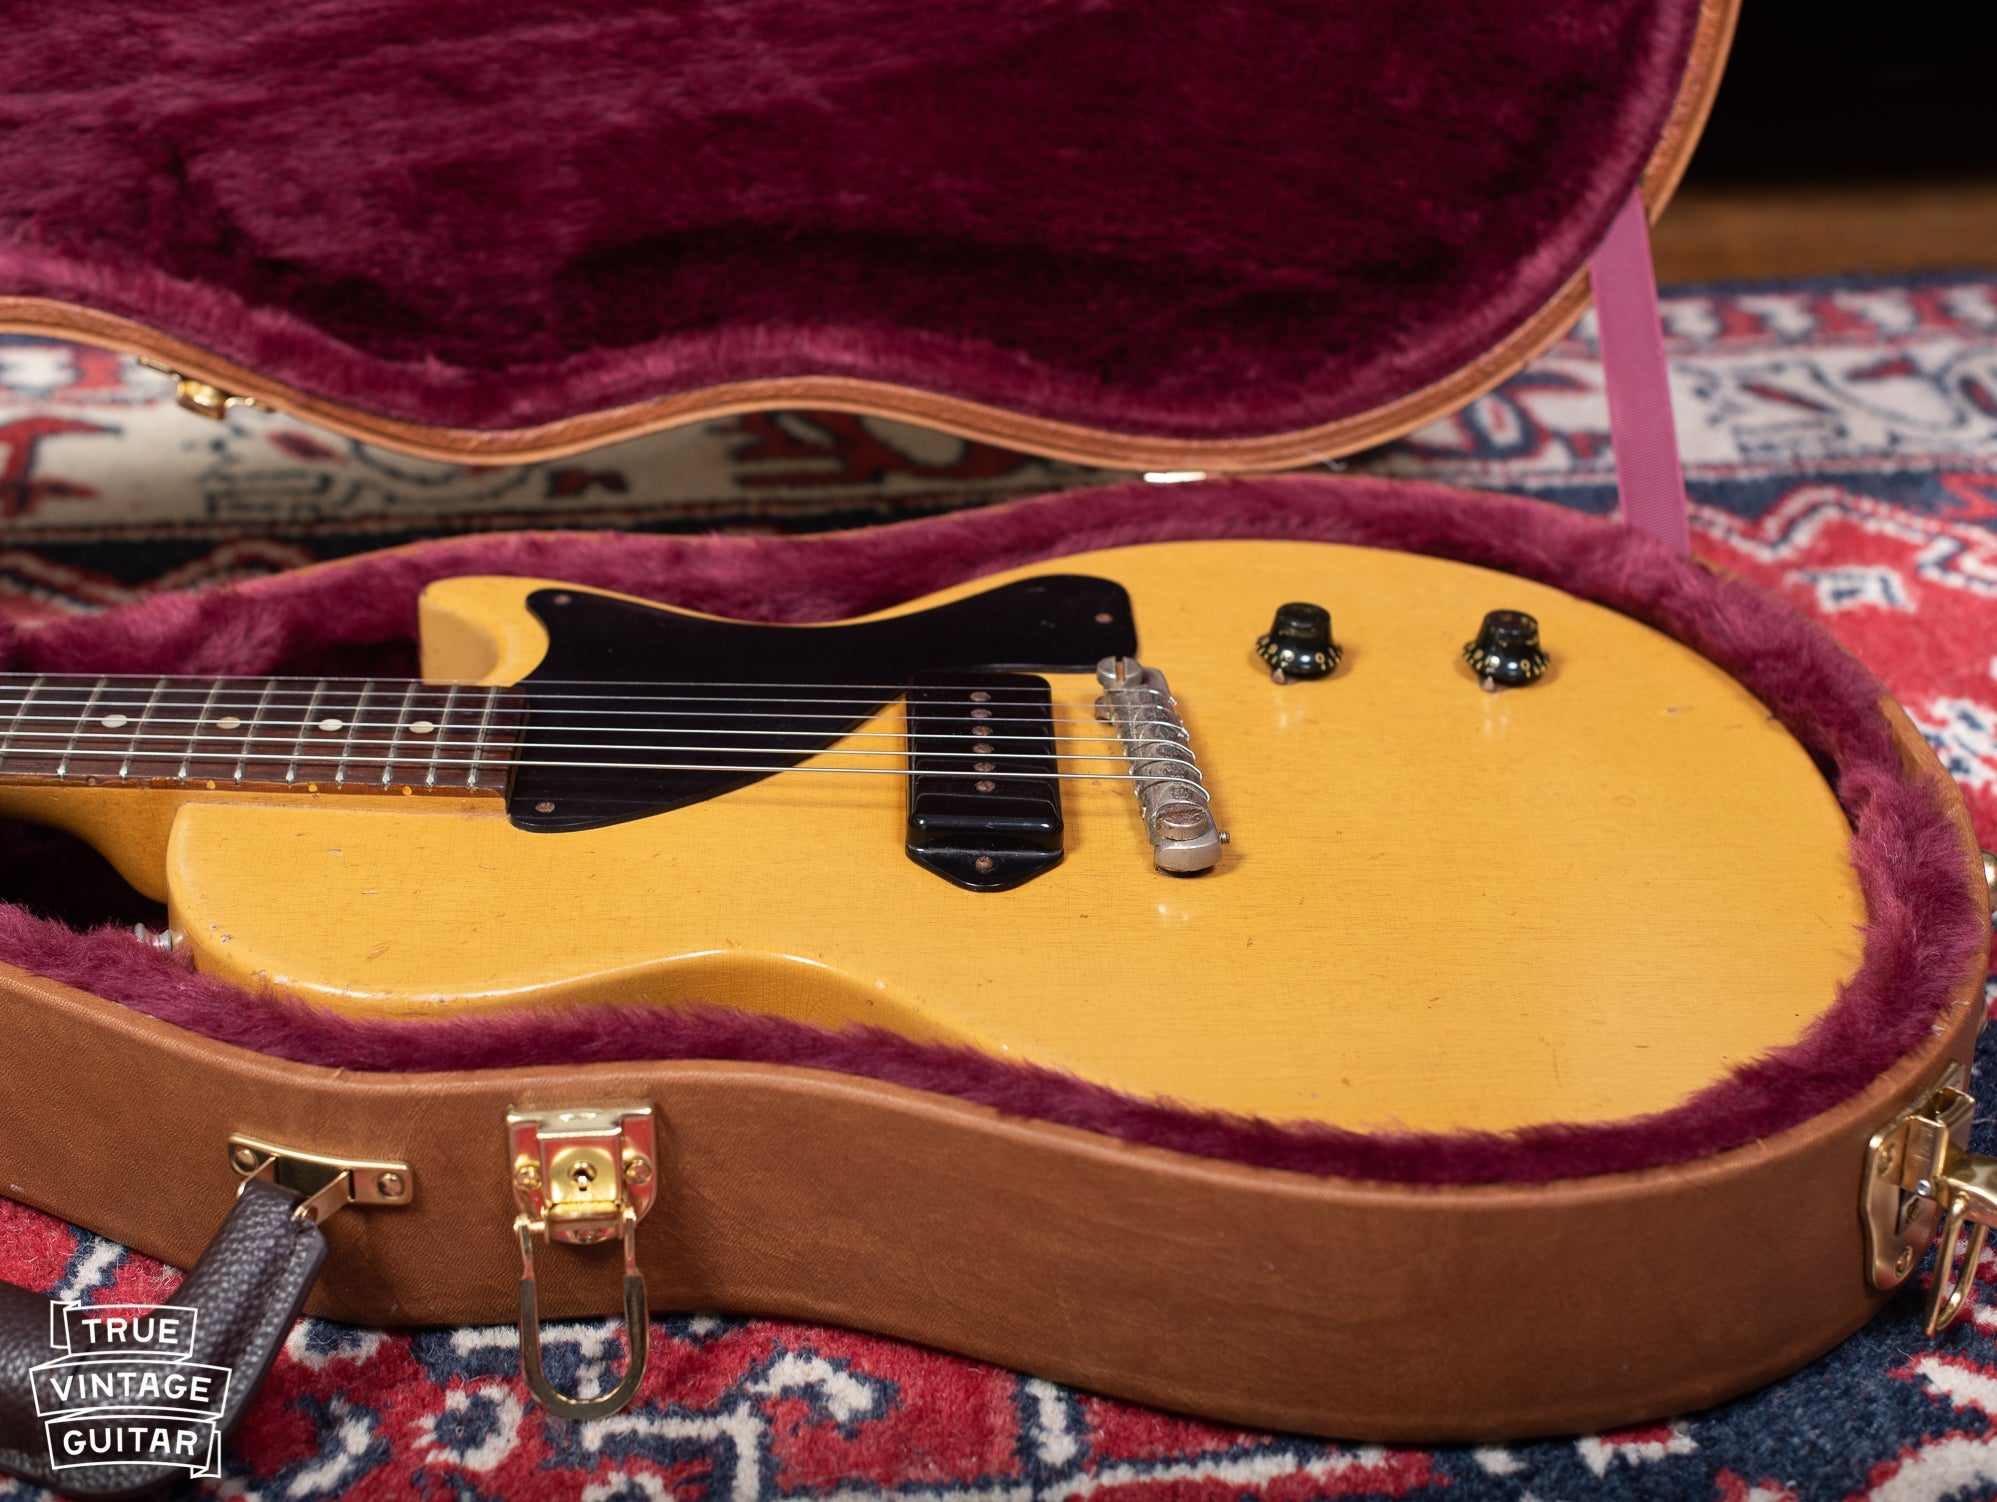 Vintage 1950s Gibson Les Paul yellow